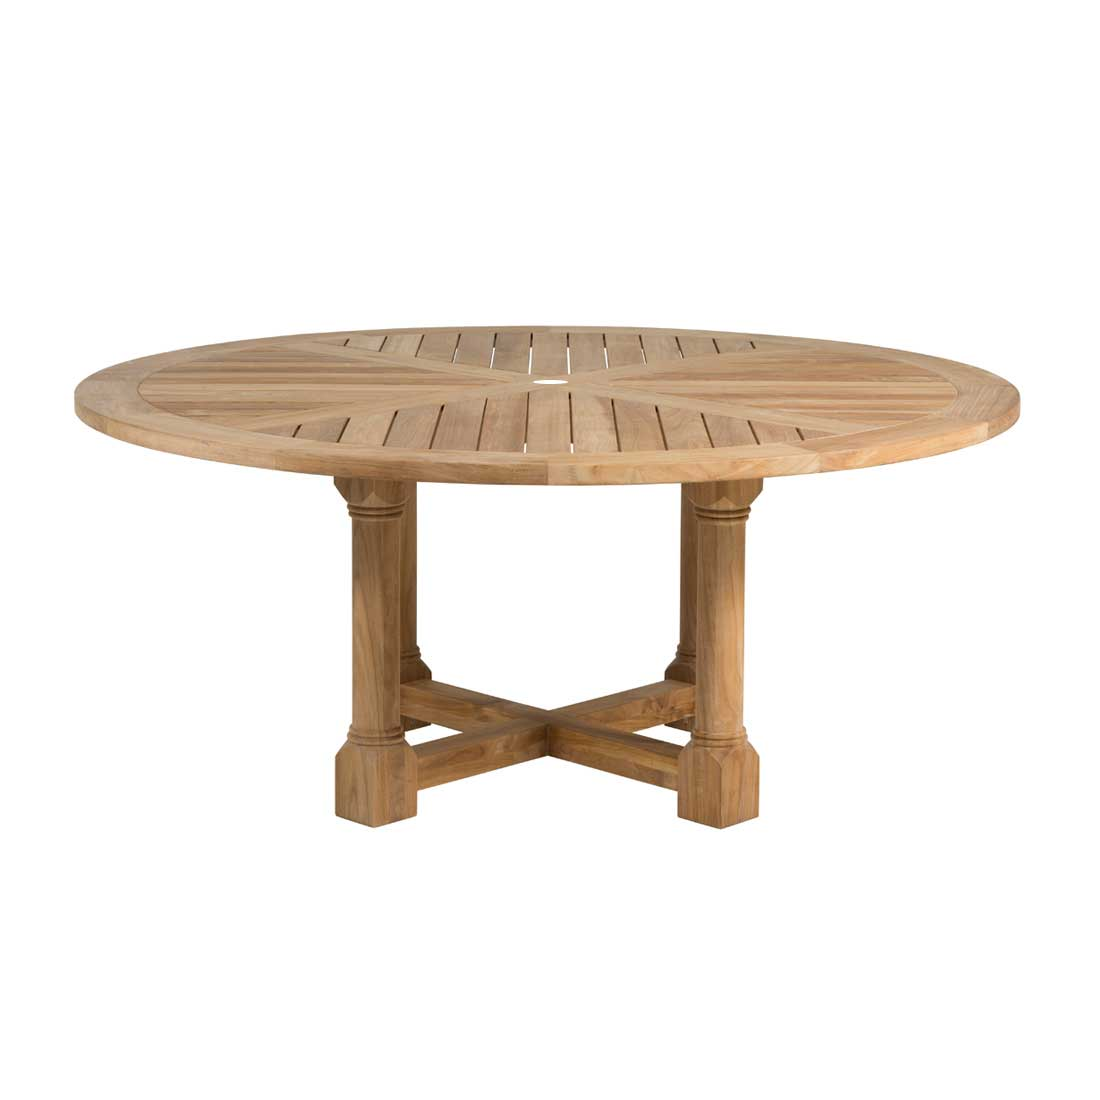 Lakeshore 72″ Round Dining Table